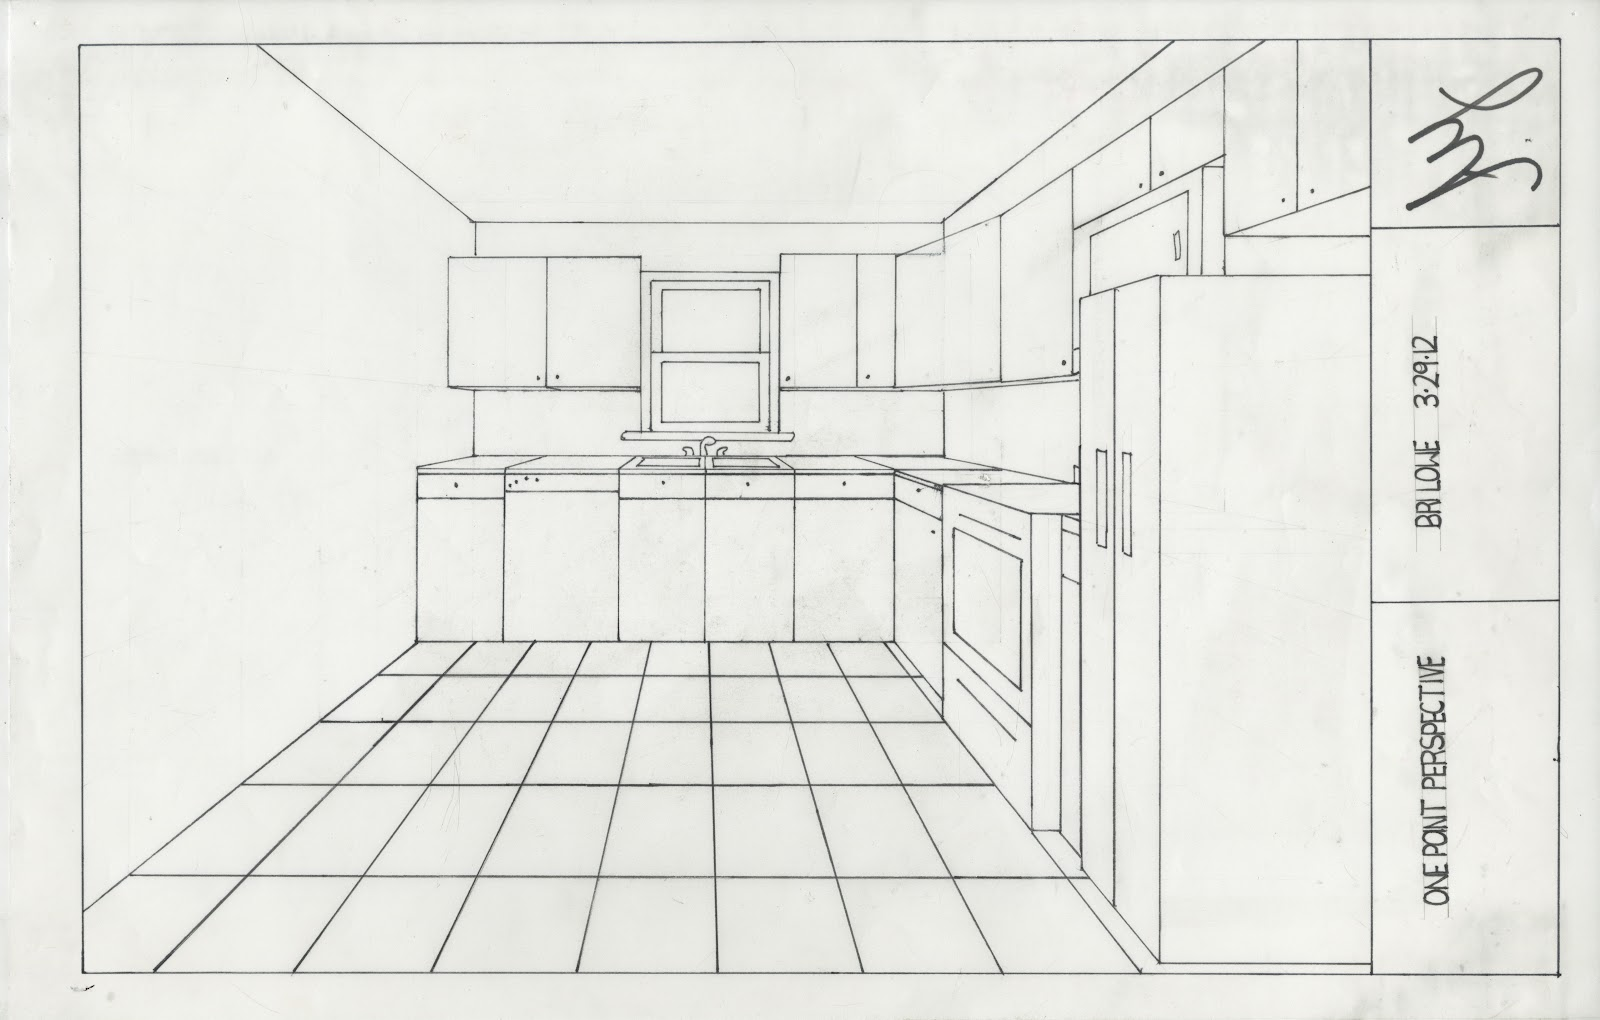 Perspective Room Drawing 1 Point Perspective Kitchen Auto